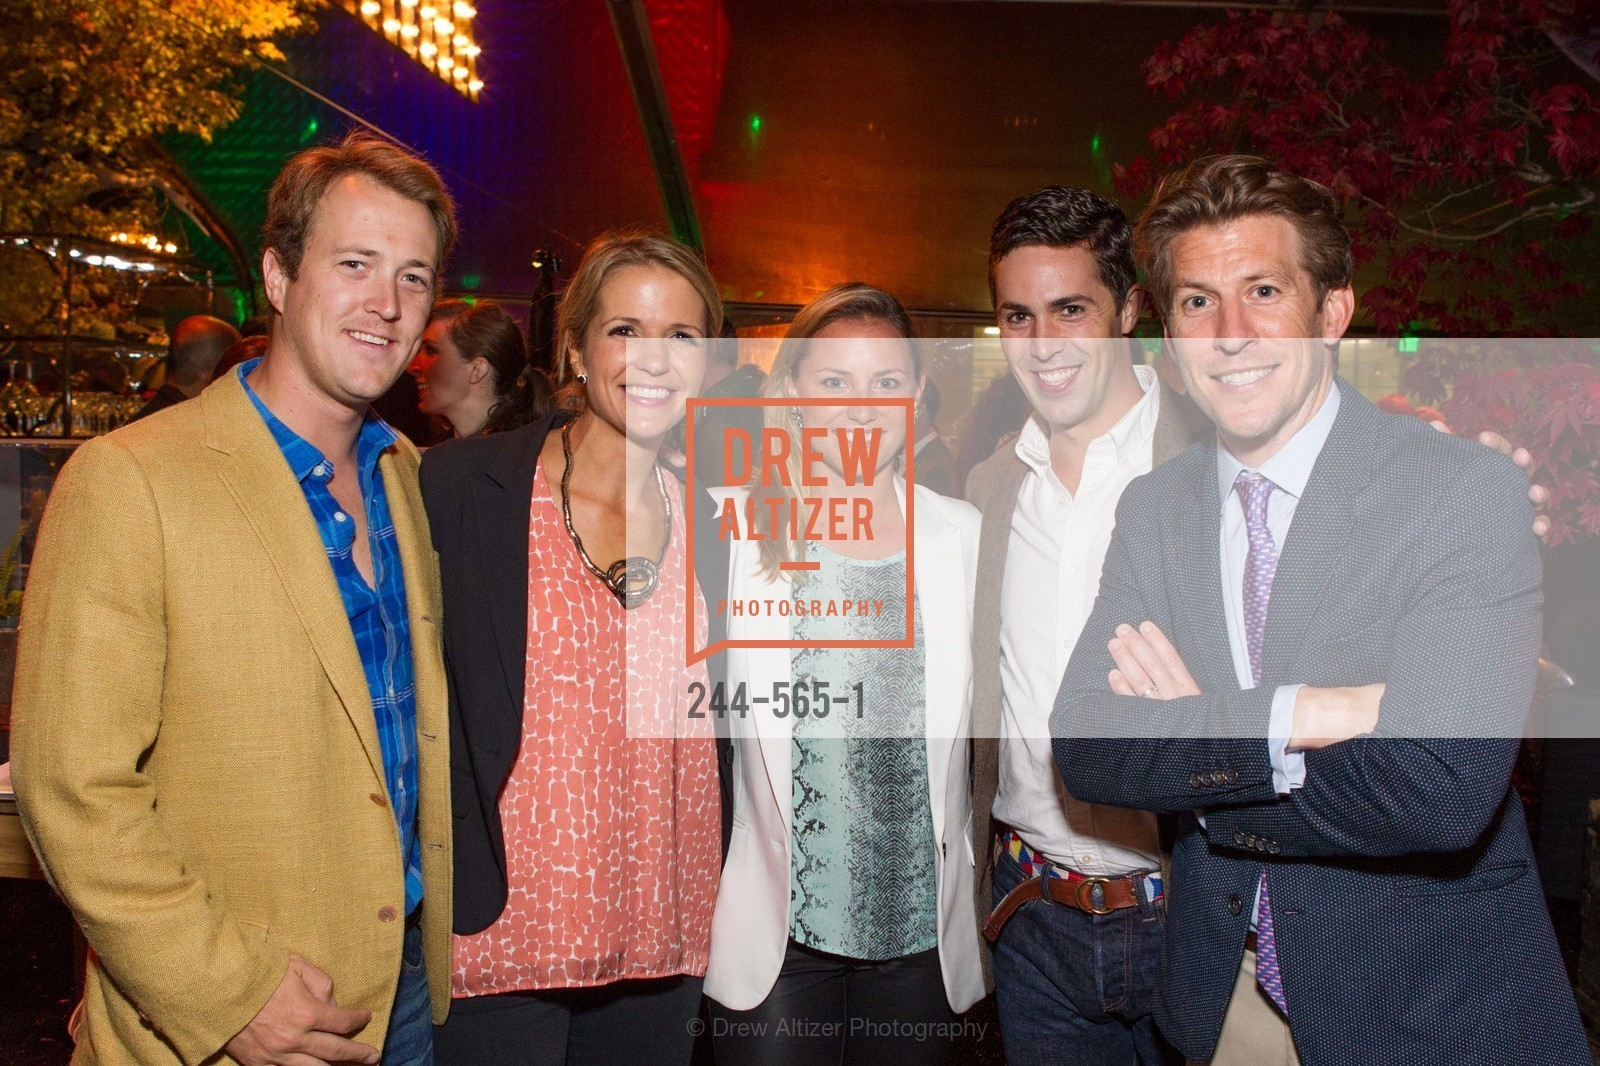 Chris Coakley, Ashley Adamson, Kate Vitt, Geoffrey Vitt, Chirs Riedy, GLAAD GALA Kick-Off Party Hosted by SAKS FIFTH AVENUE, Saks Fifth Avenue. 384 Post Street, September 12th, 2014,Drew Altizer, Drew Altizer Photography, full-service agency, private events, San Francisco photographer, photographer california